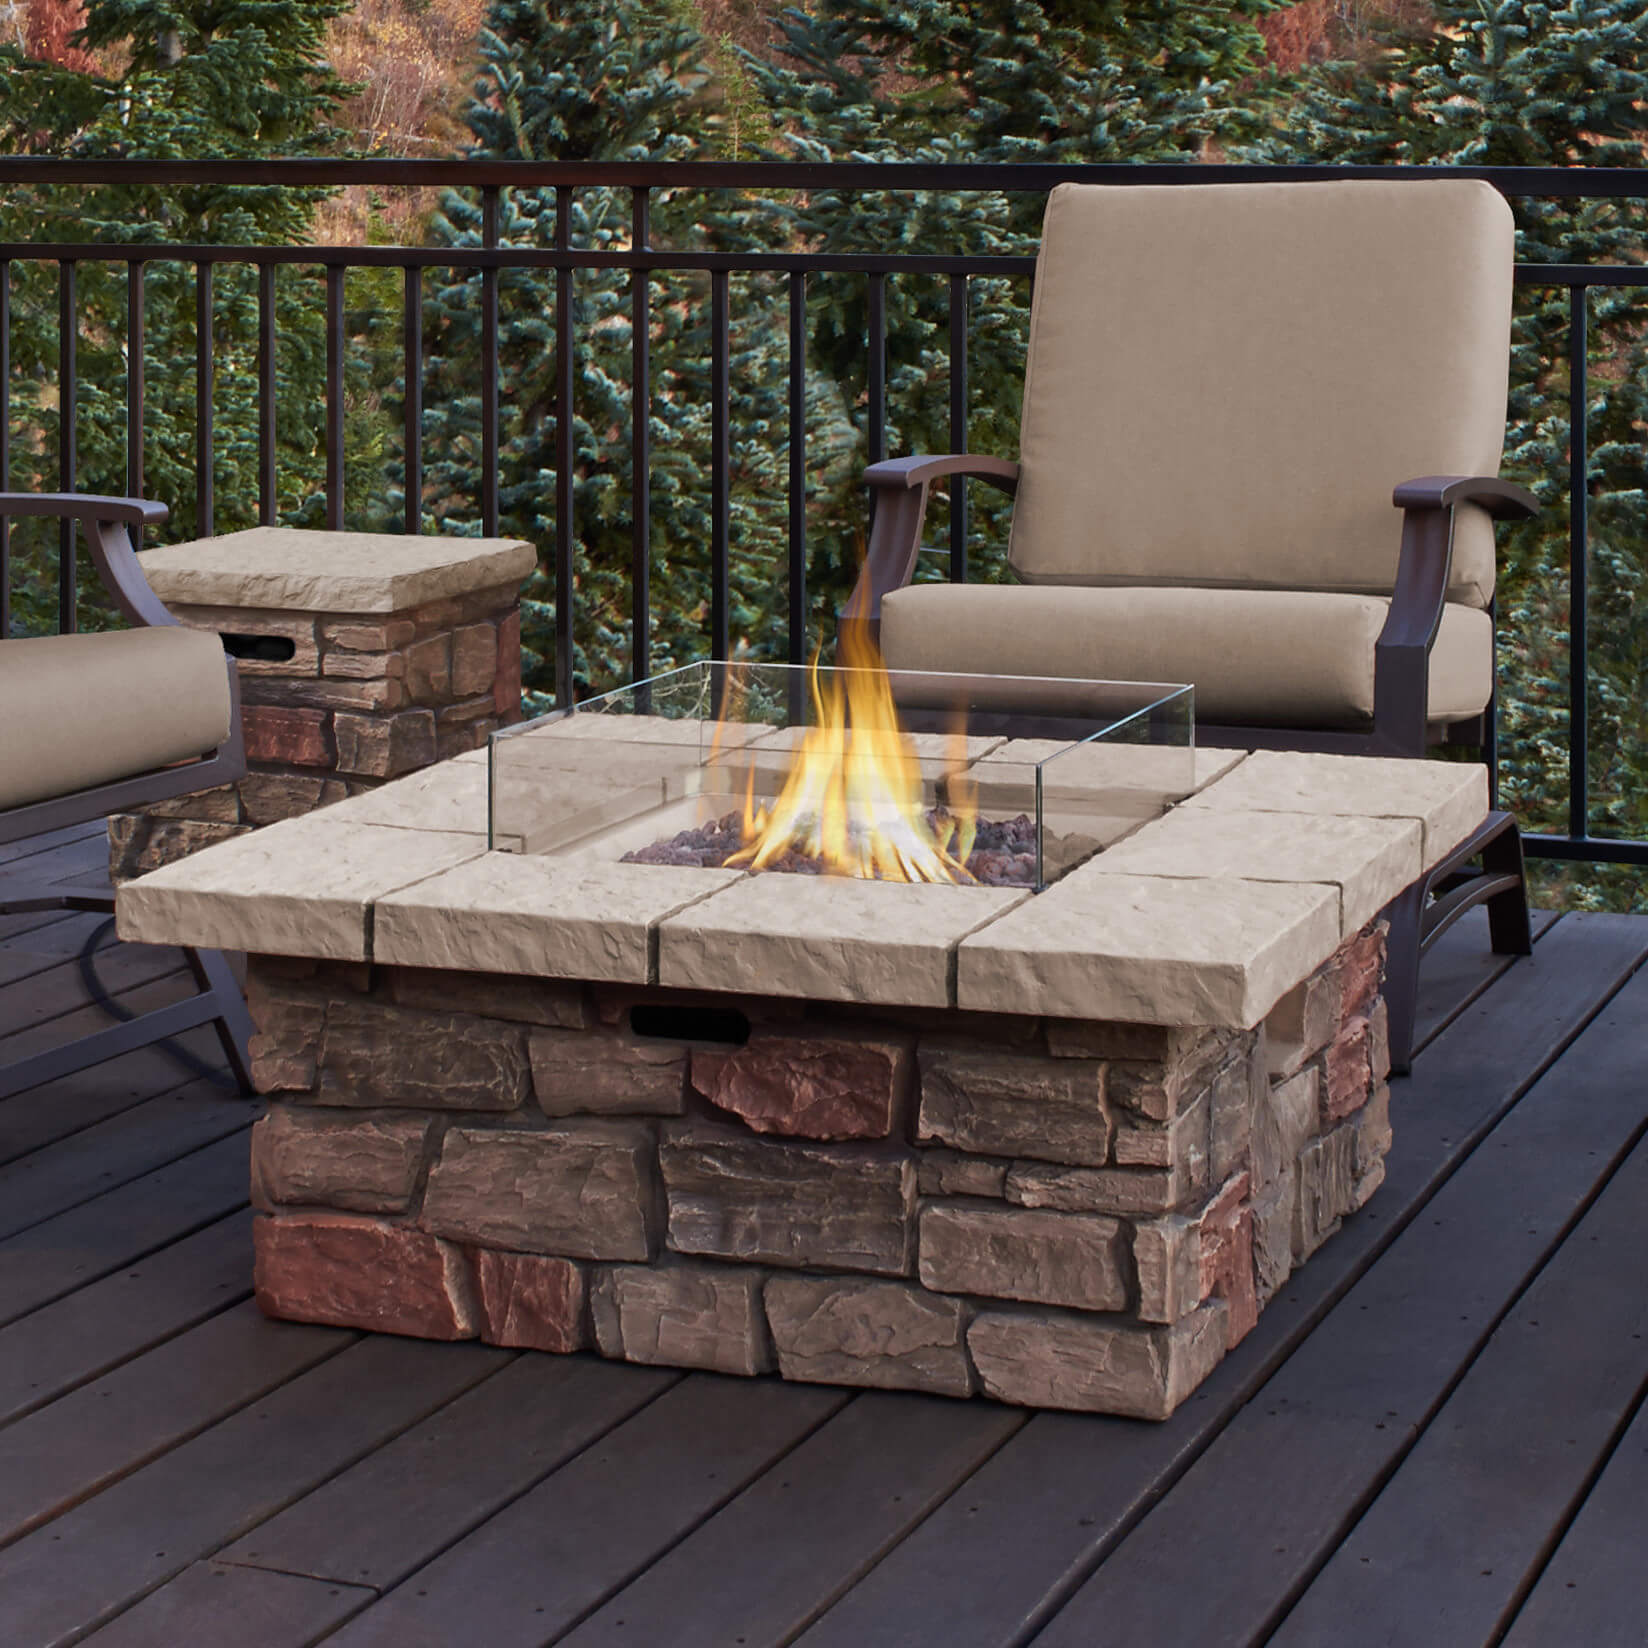 Attrayant Give Your Home A Cool Fire Pit Table With This Brick Façade Propane Patio Fire  Pit